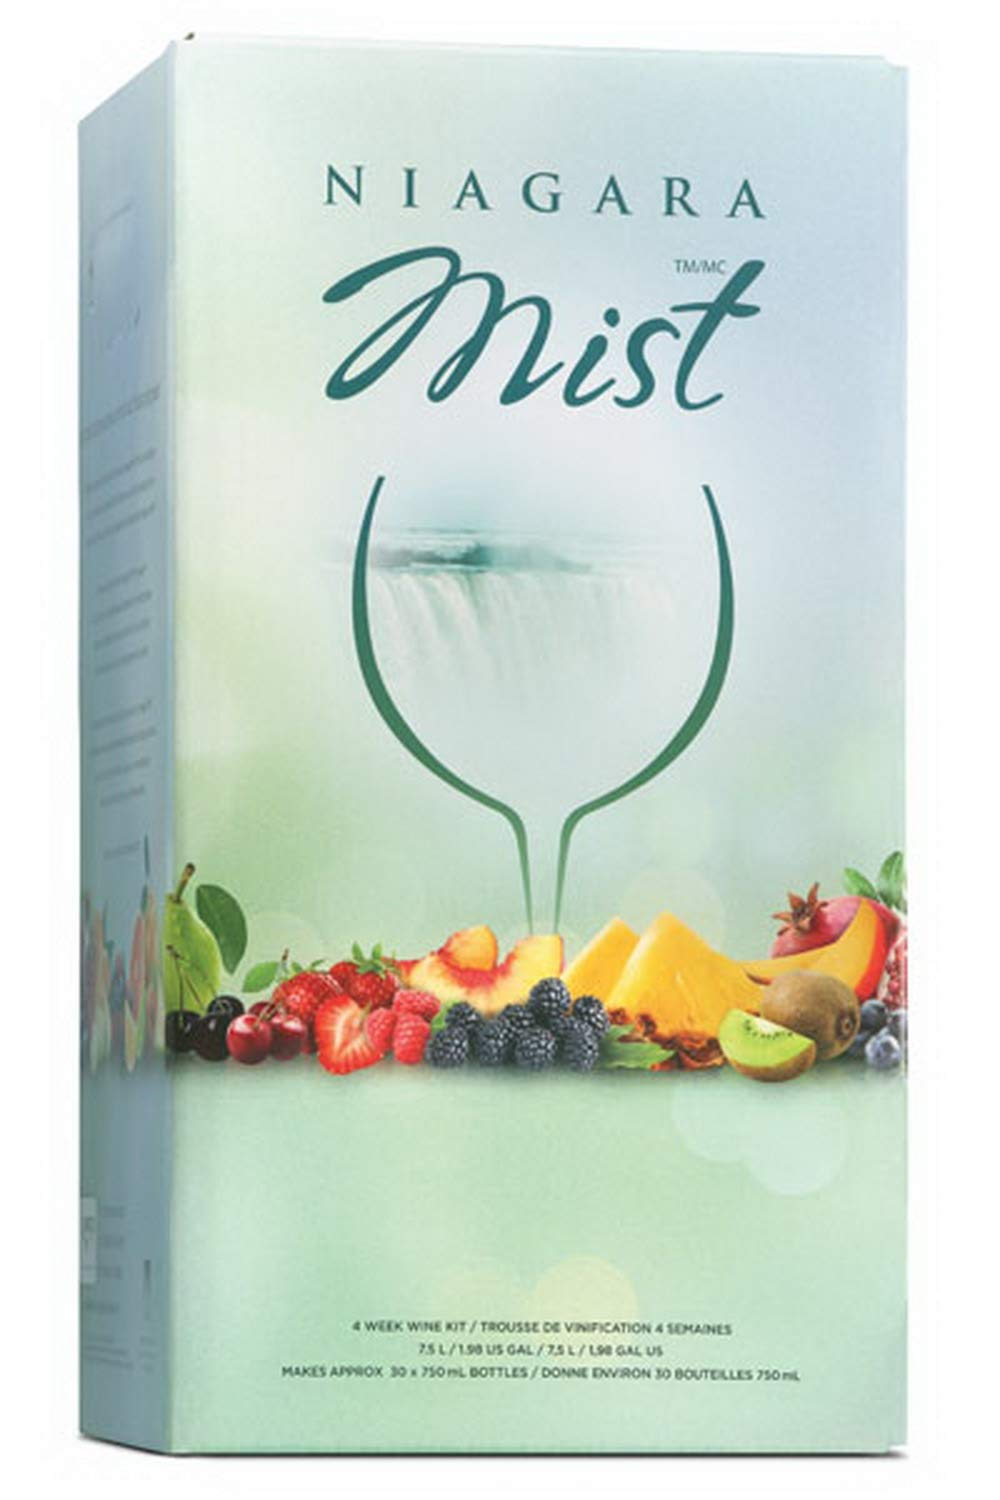 NIAGARA MIST - Orchard Crisp- Makes wine in 4 weeks Retail Box by Ubrewusa